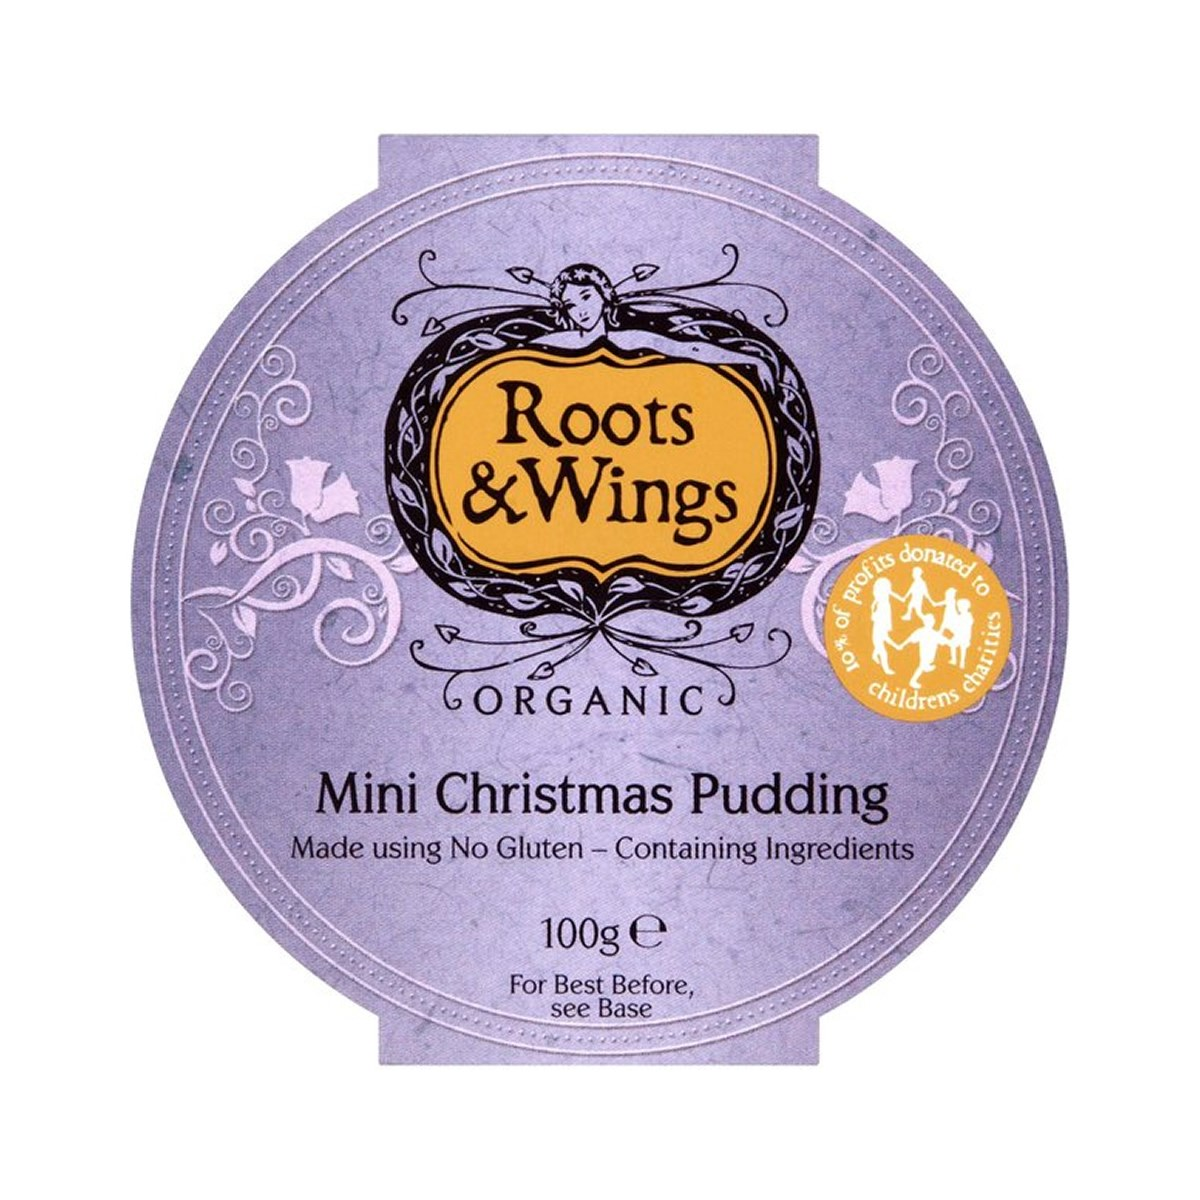 Roots & Wings Gluten Less Mini Christmas Pudding